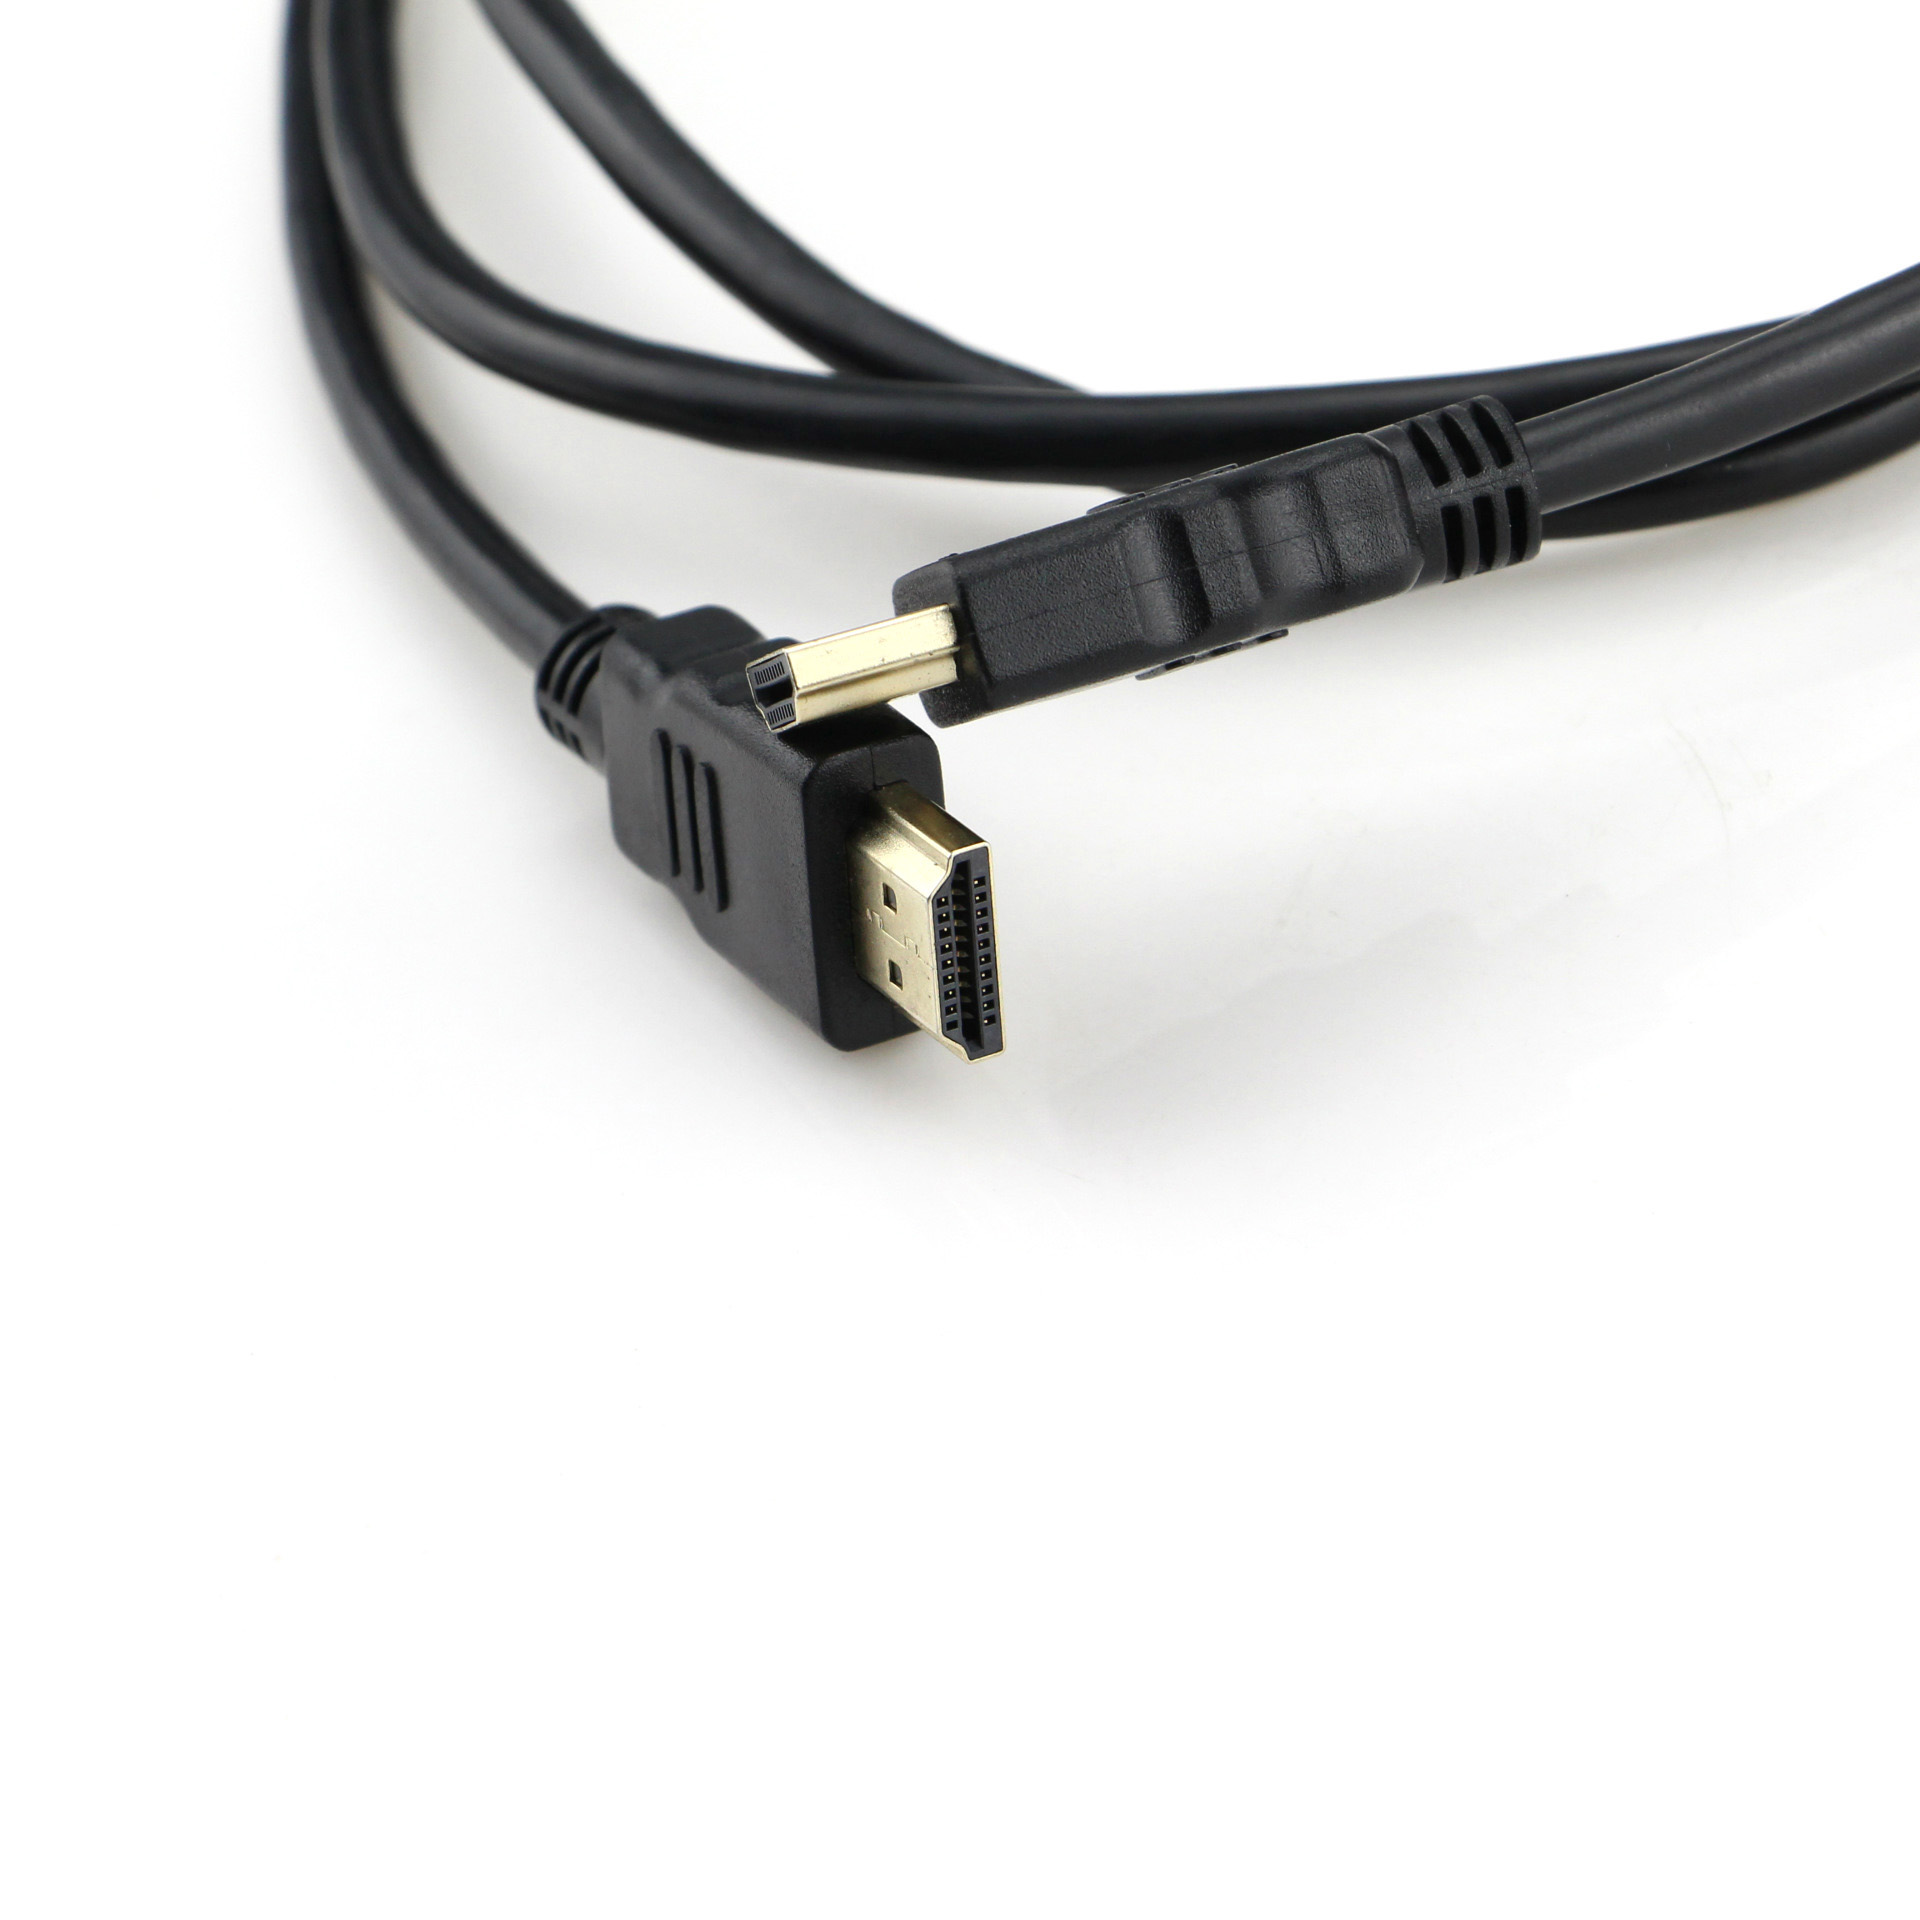 2 ft hdmi cable